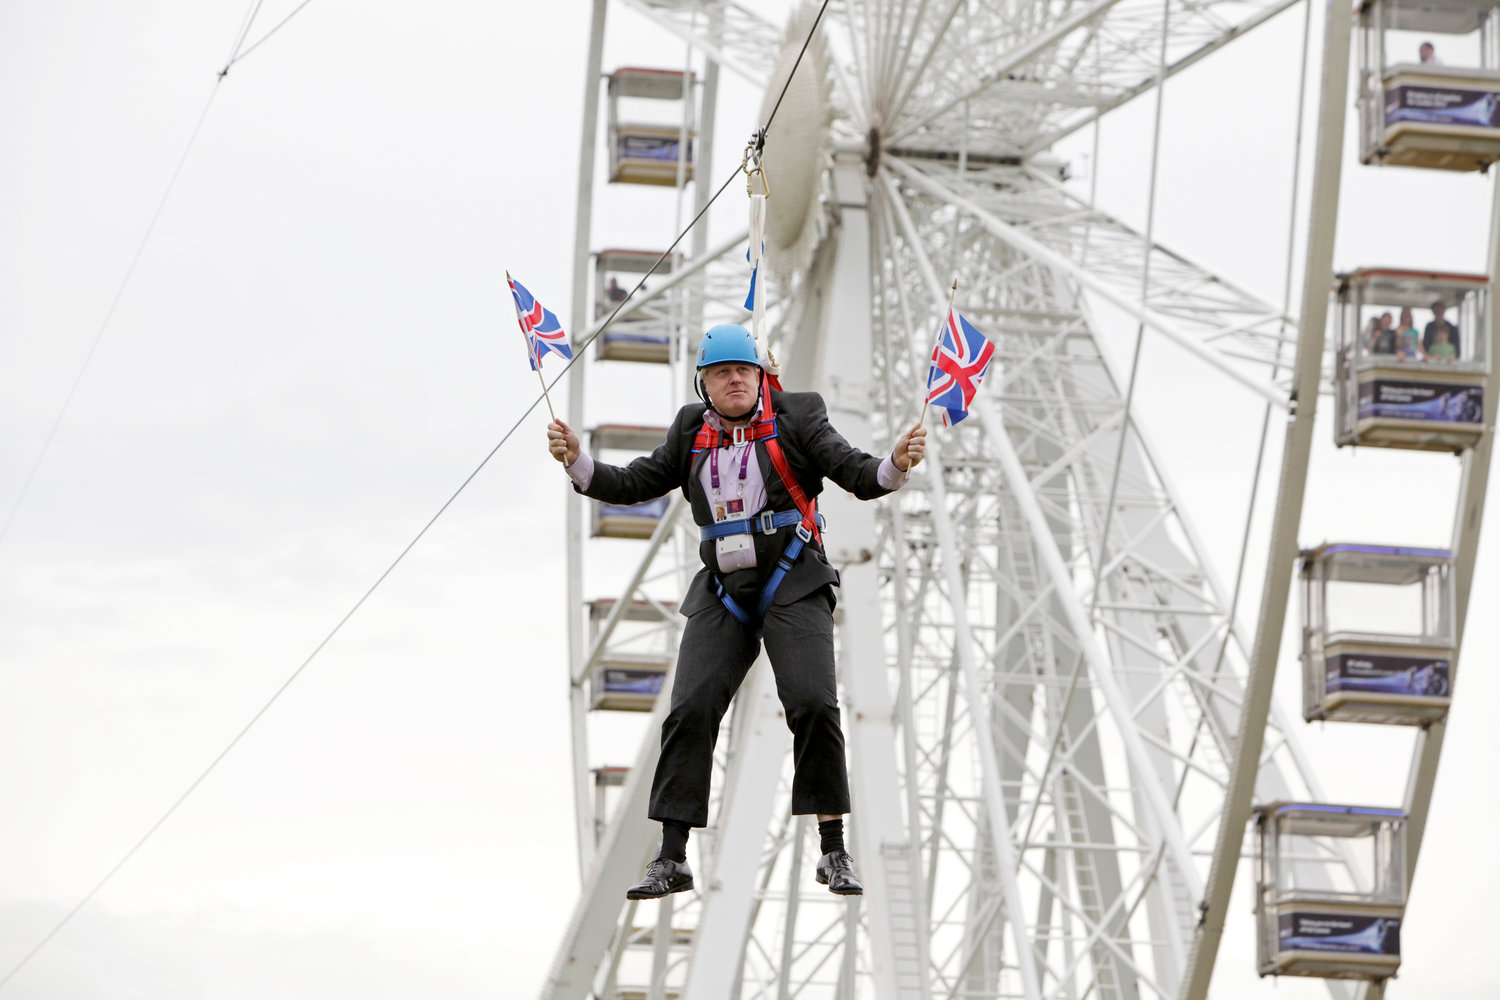 Mayor of London Boris Johnson got stuck on a zip-line during BT London Live in Victoria Park on Aug. 1, 2012.